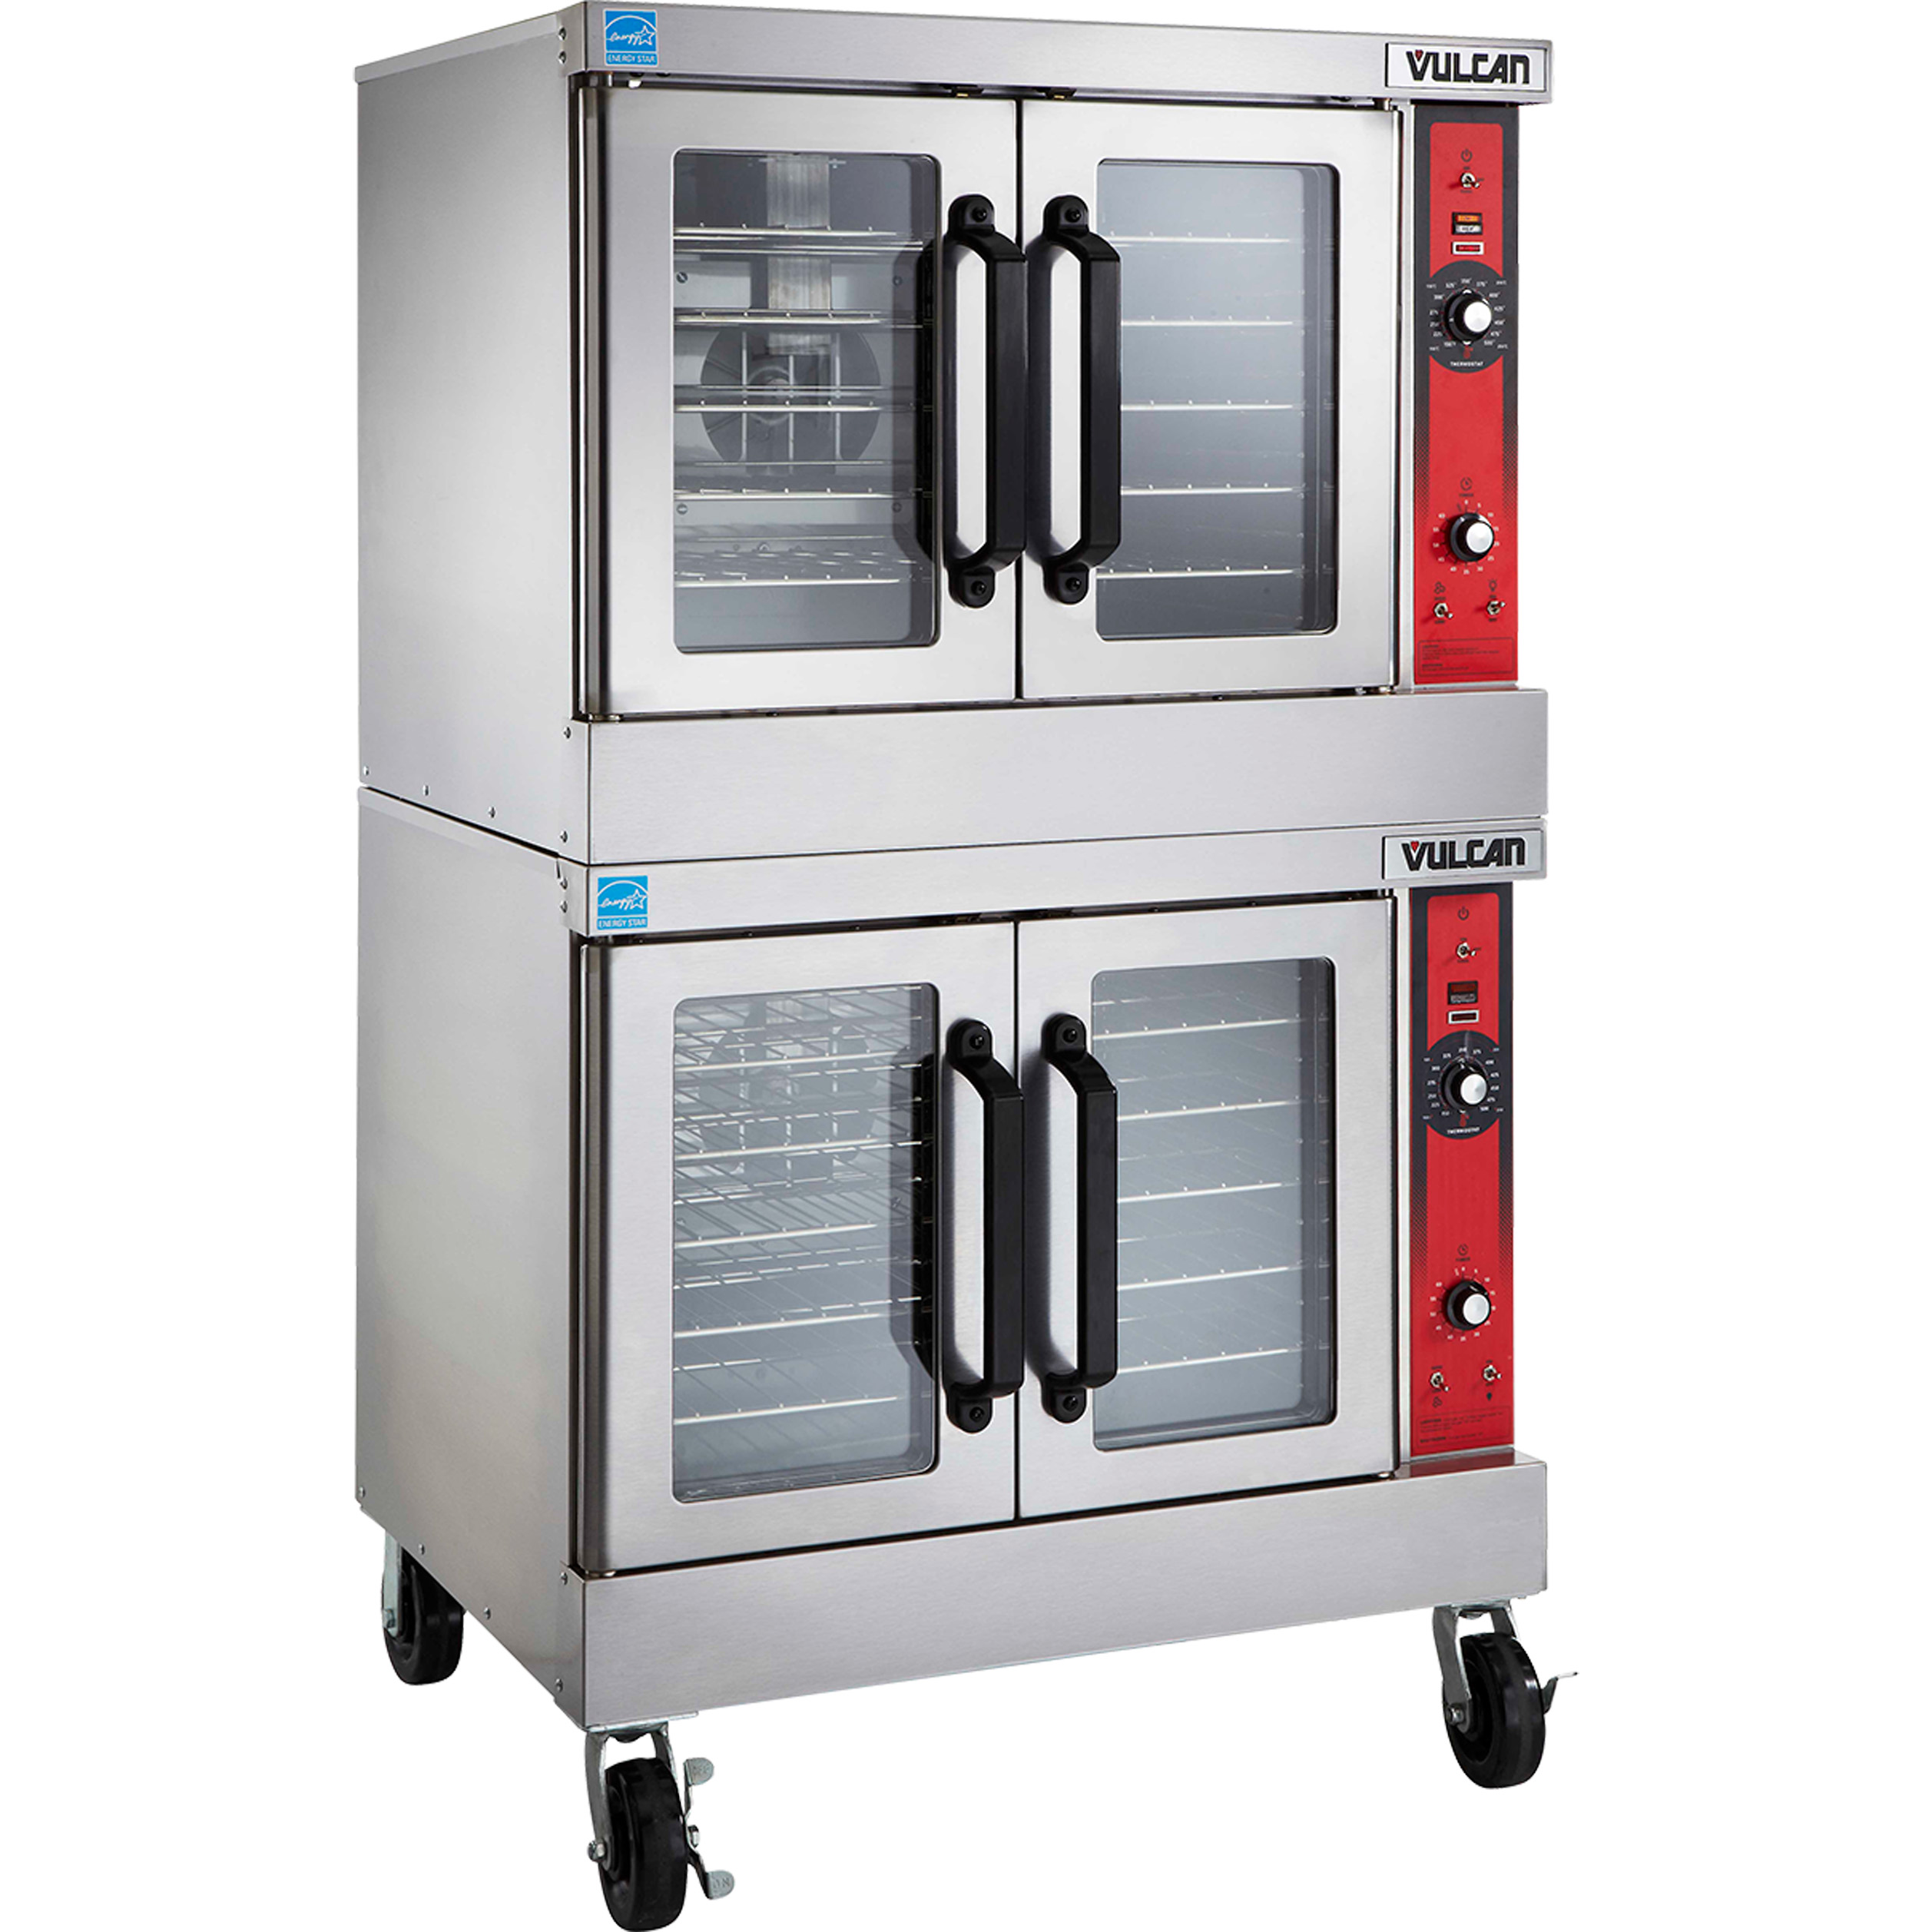 Vulcan VC66GC convection oven, gas